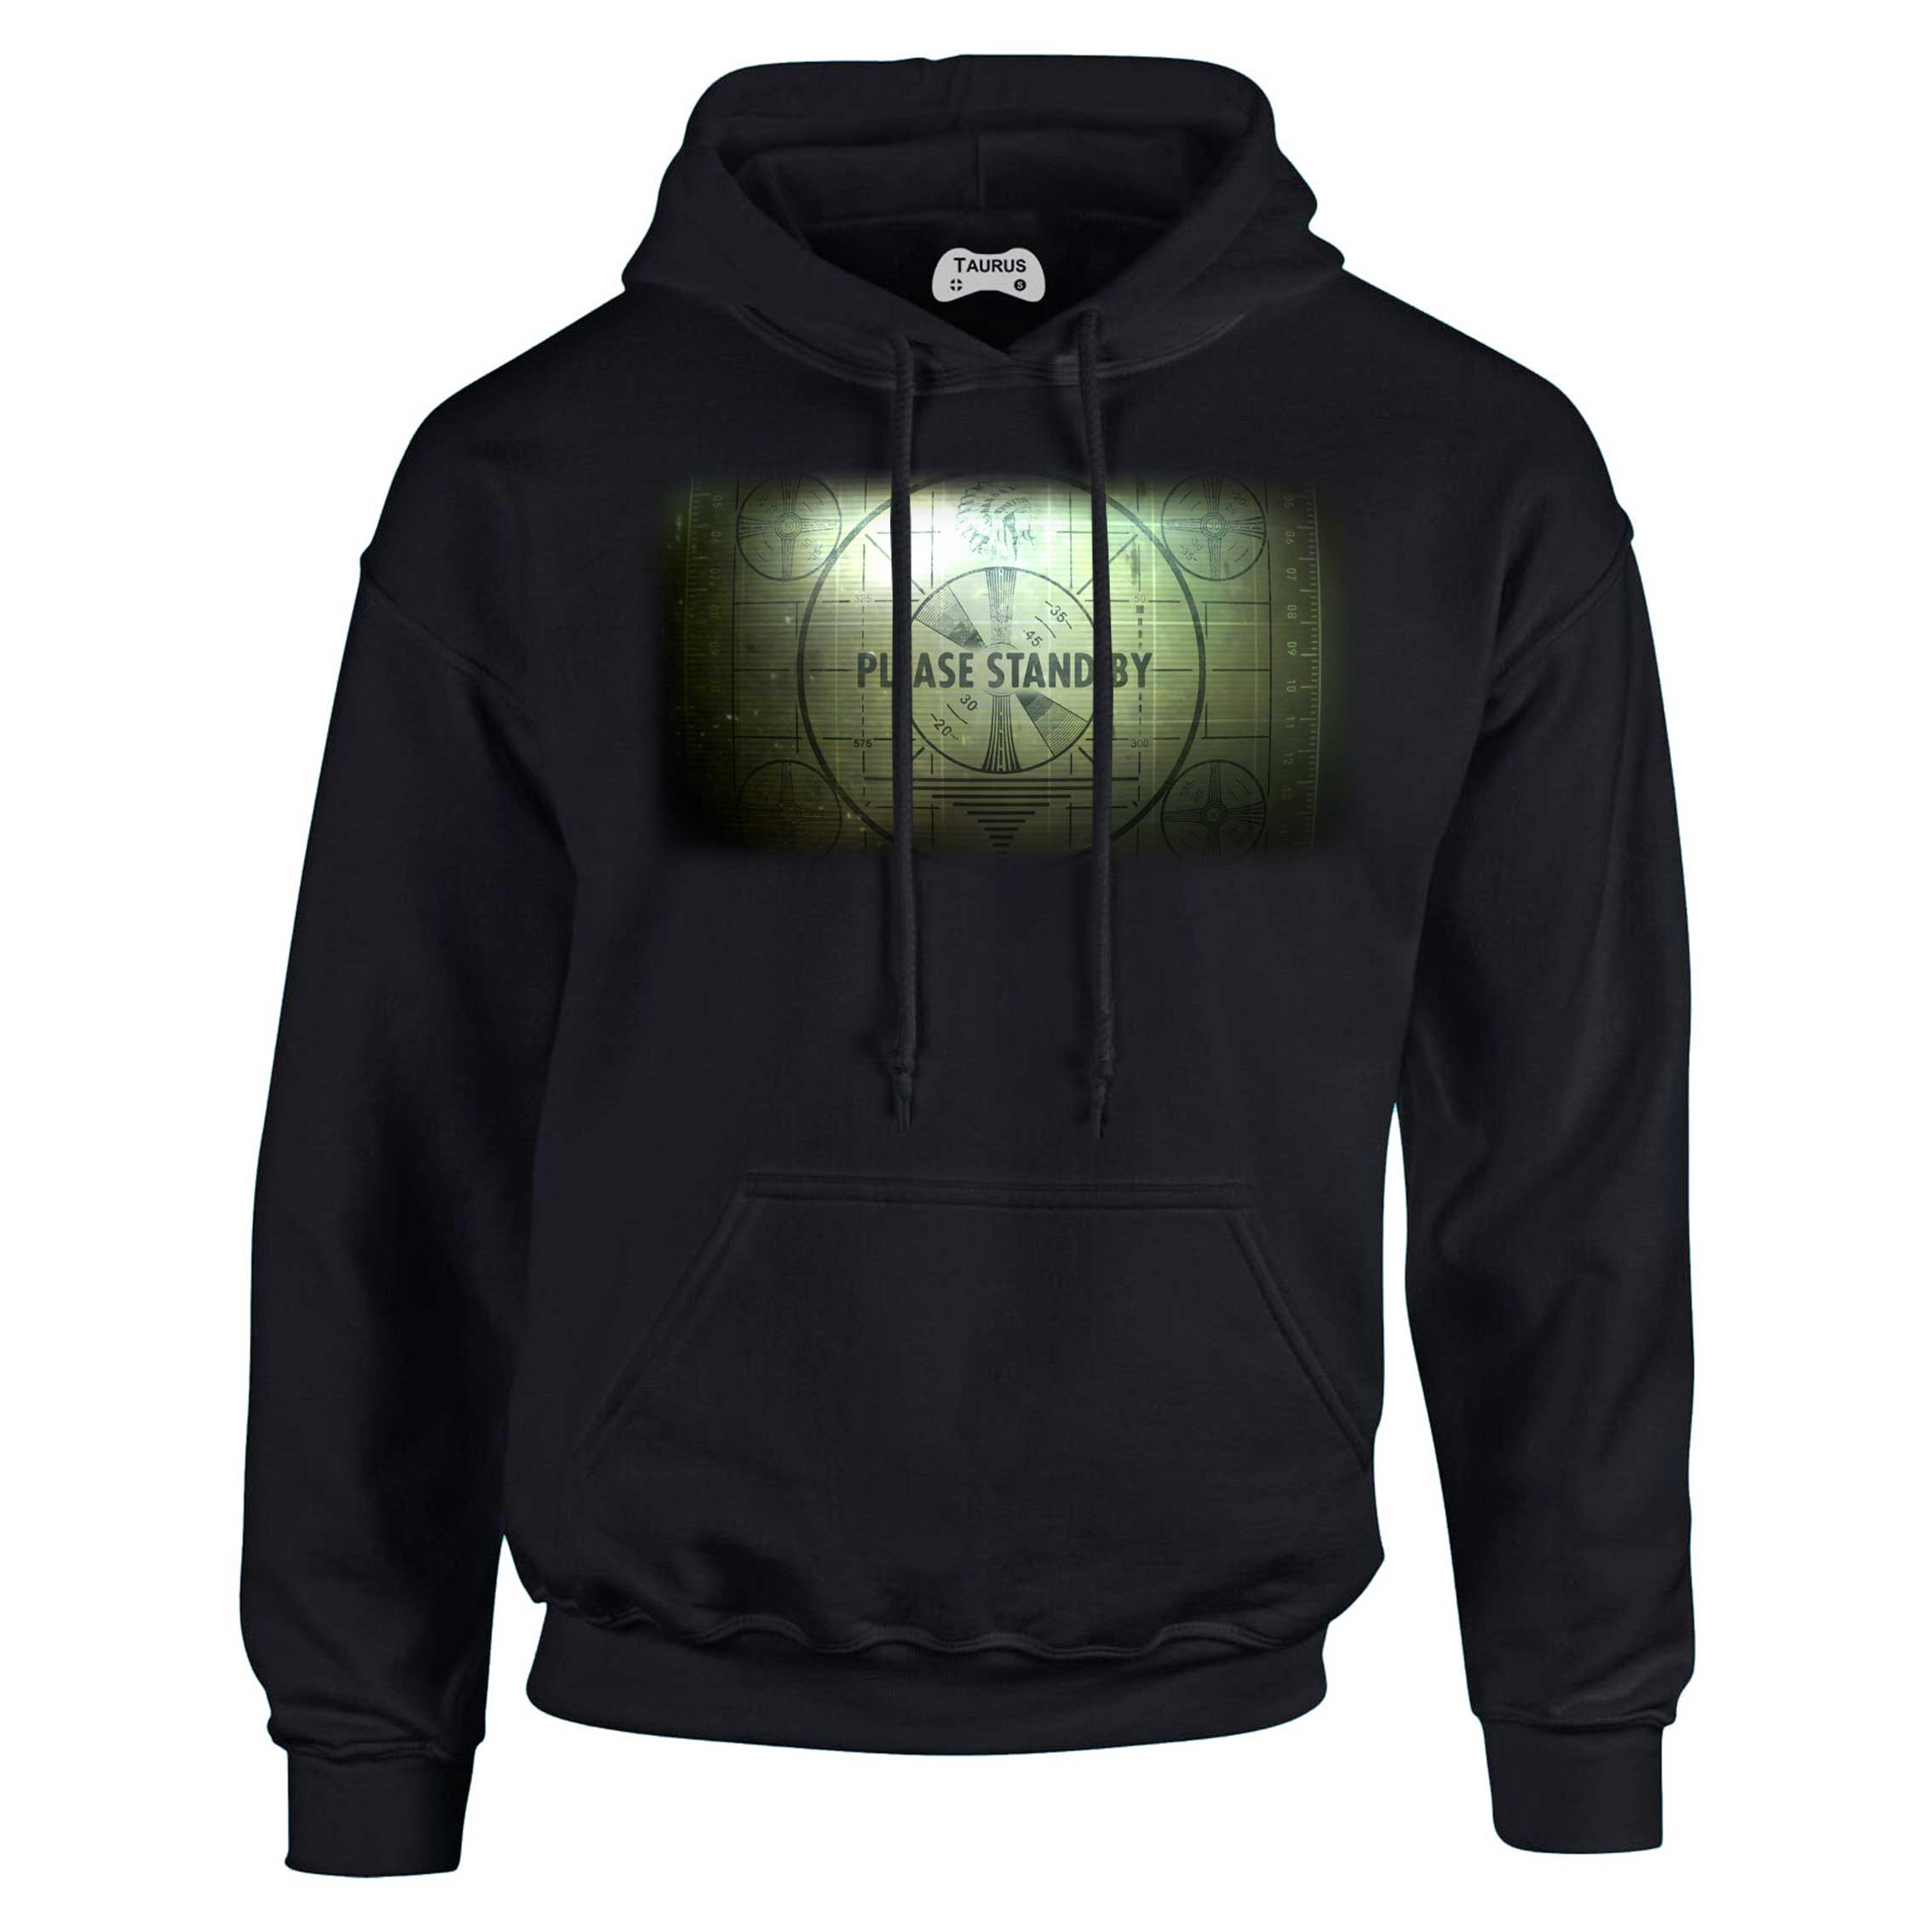 Fallout 4 Hoodie Standby